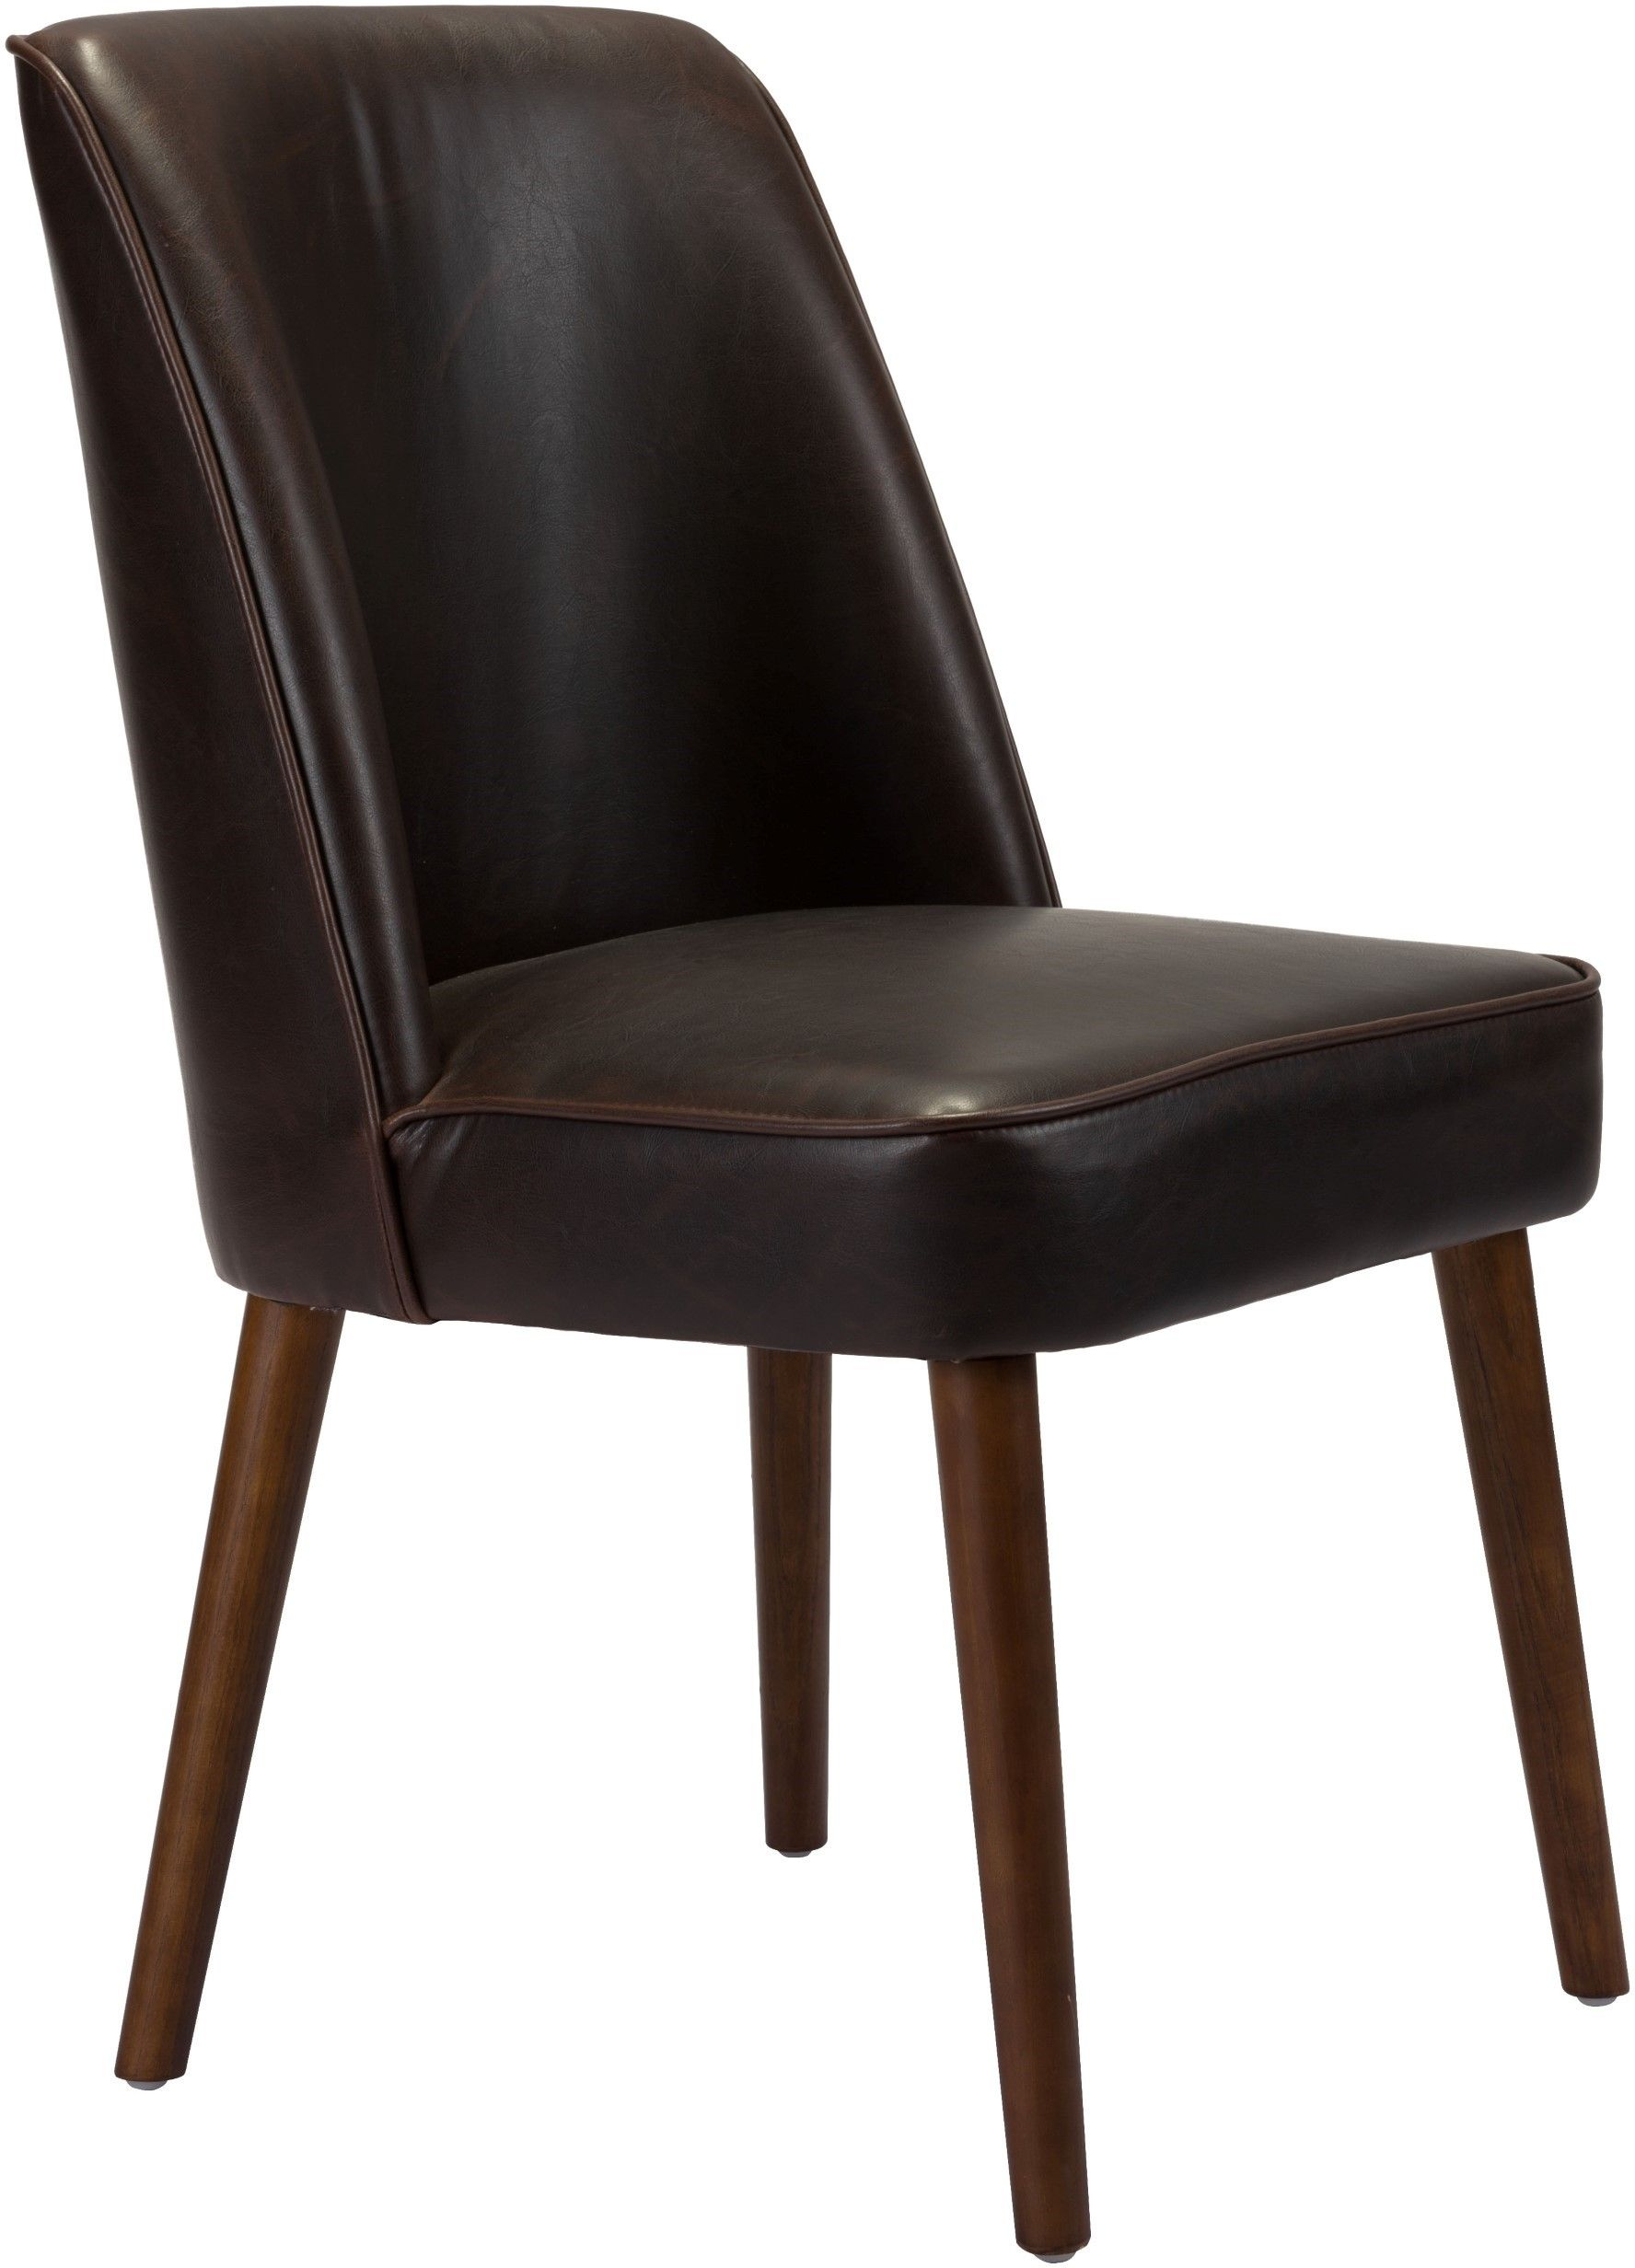 Zuo Modern Kennedy Dining Chair Set of 2  Brown  100721